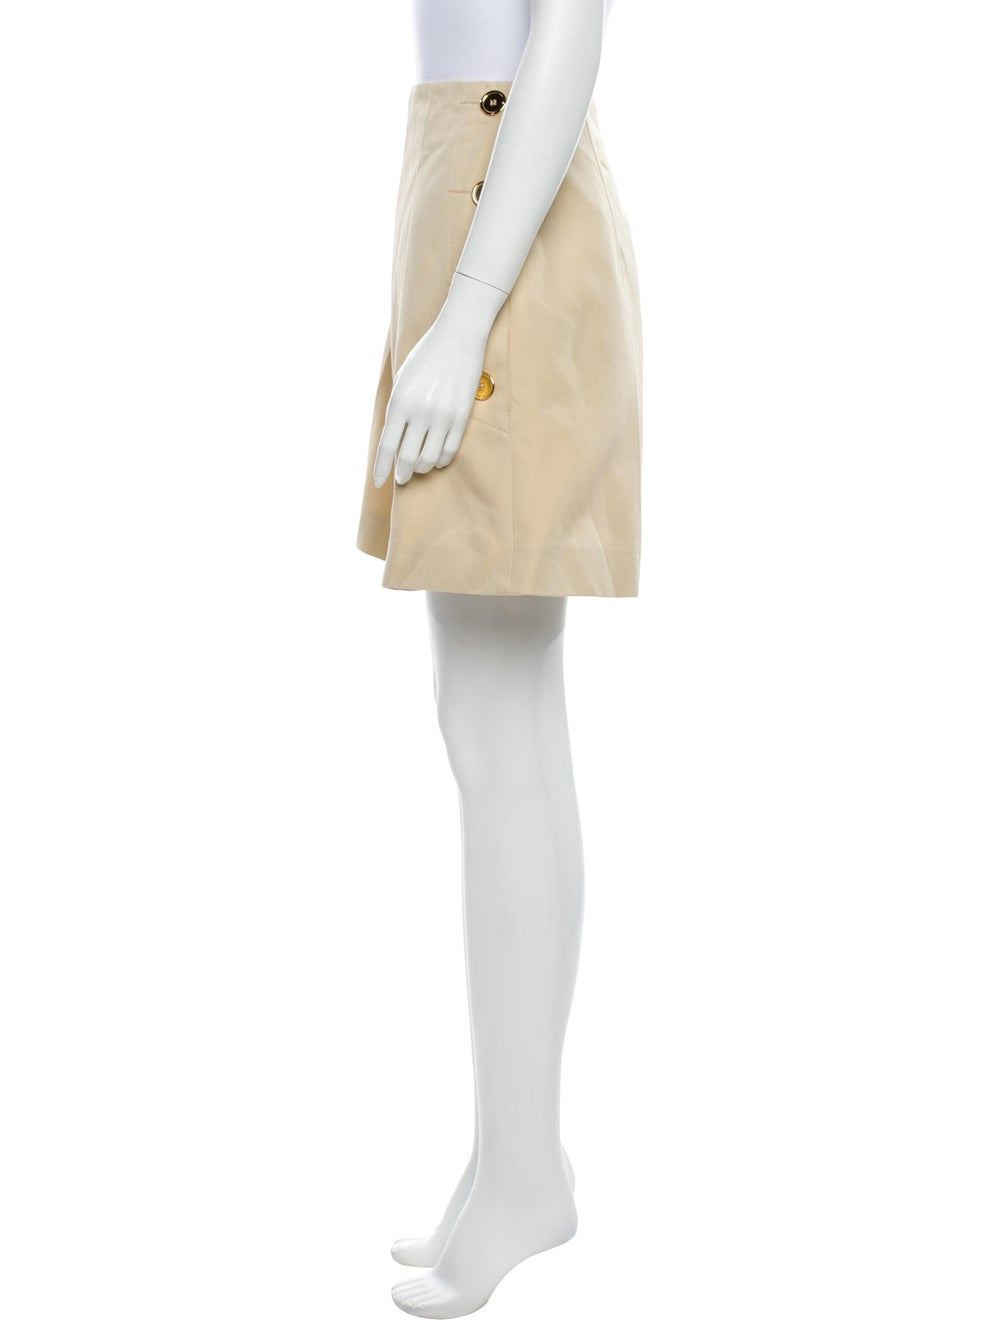 Patou Knee-Length Shorts w/ Tags - image 2